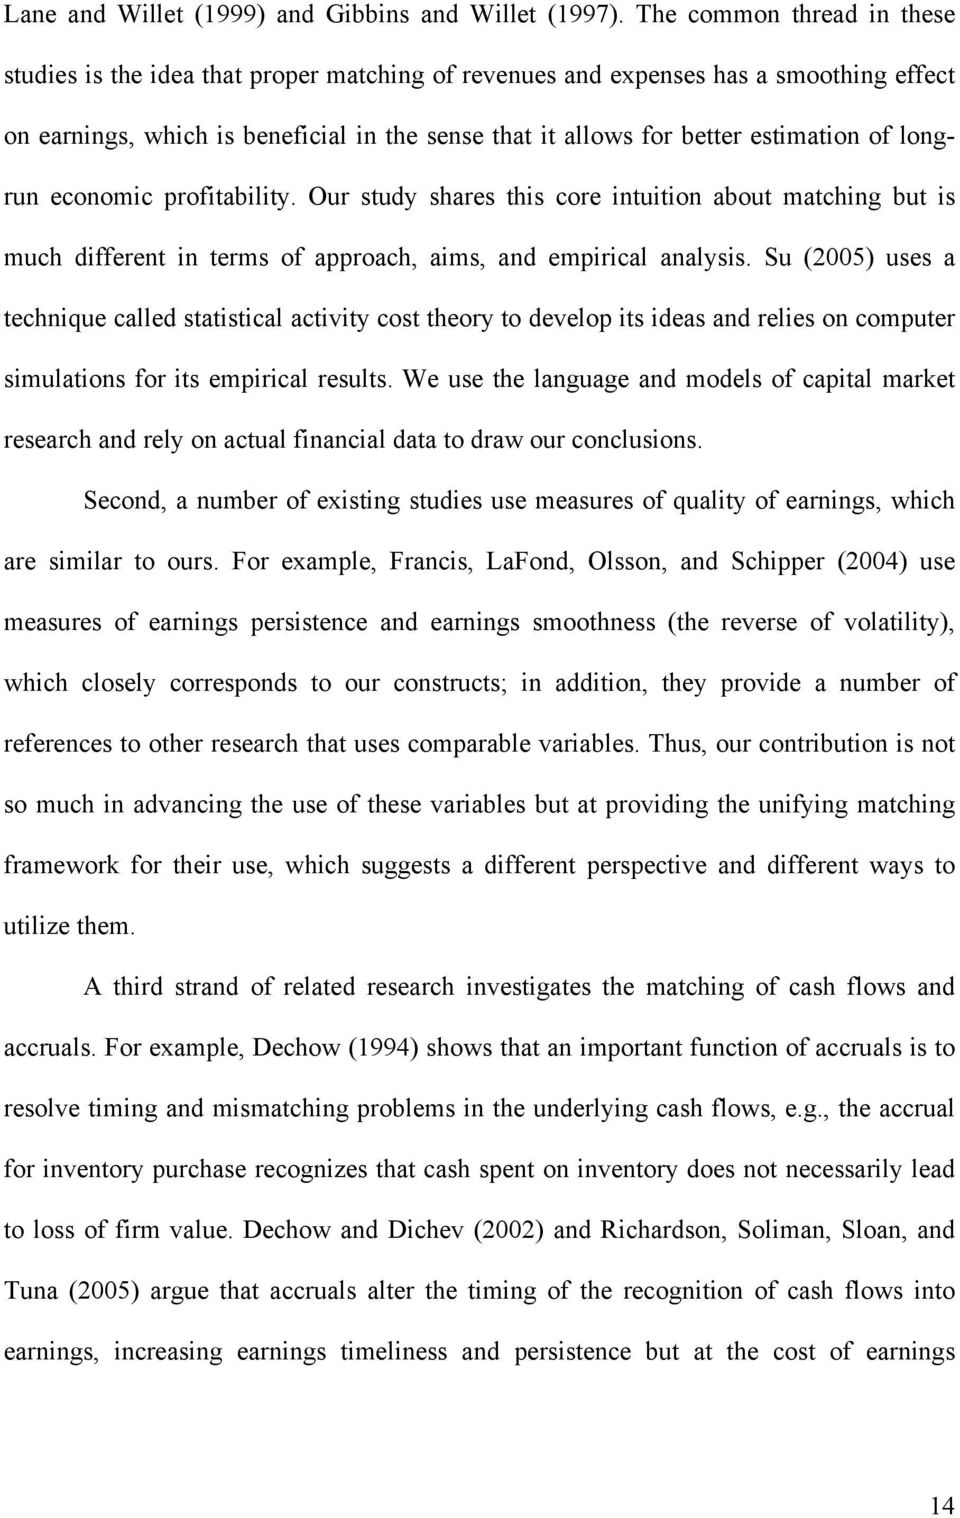 of longrun economic profitability. Our study shares this core intuition about matching but is much different in terms of approach, aims, and empirical analysis.